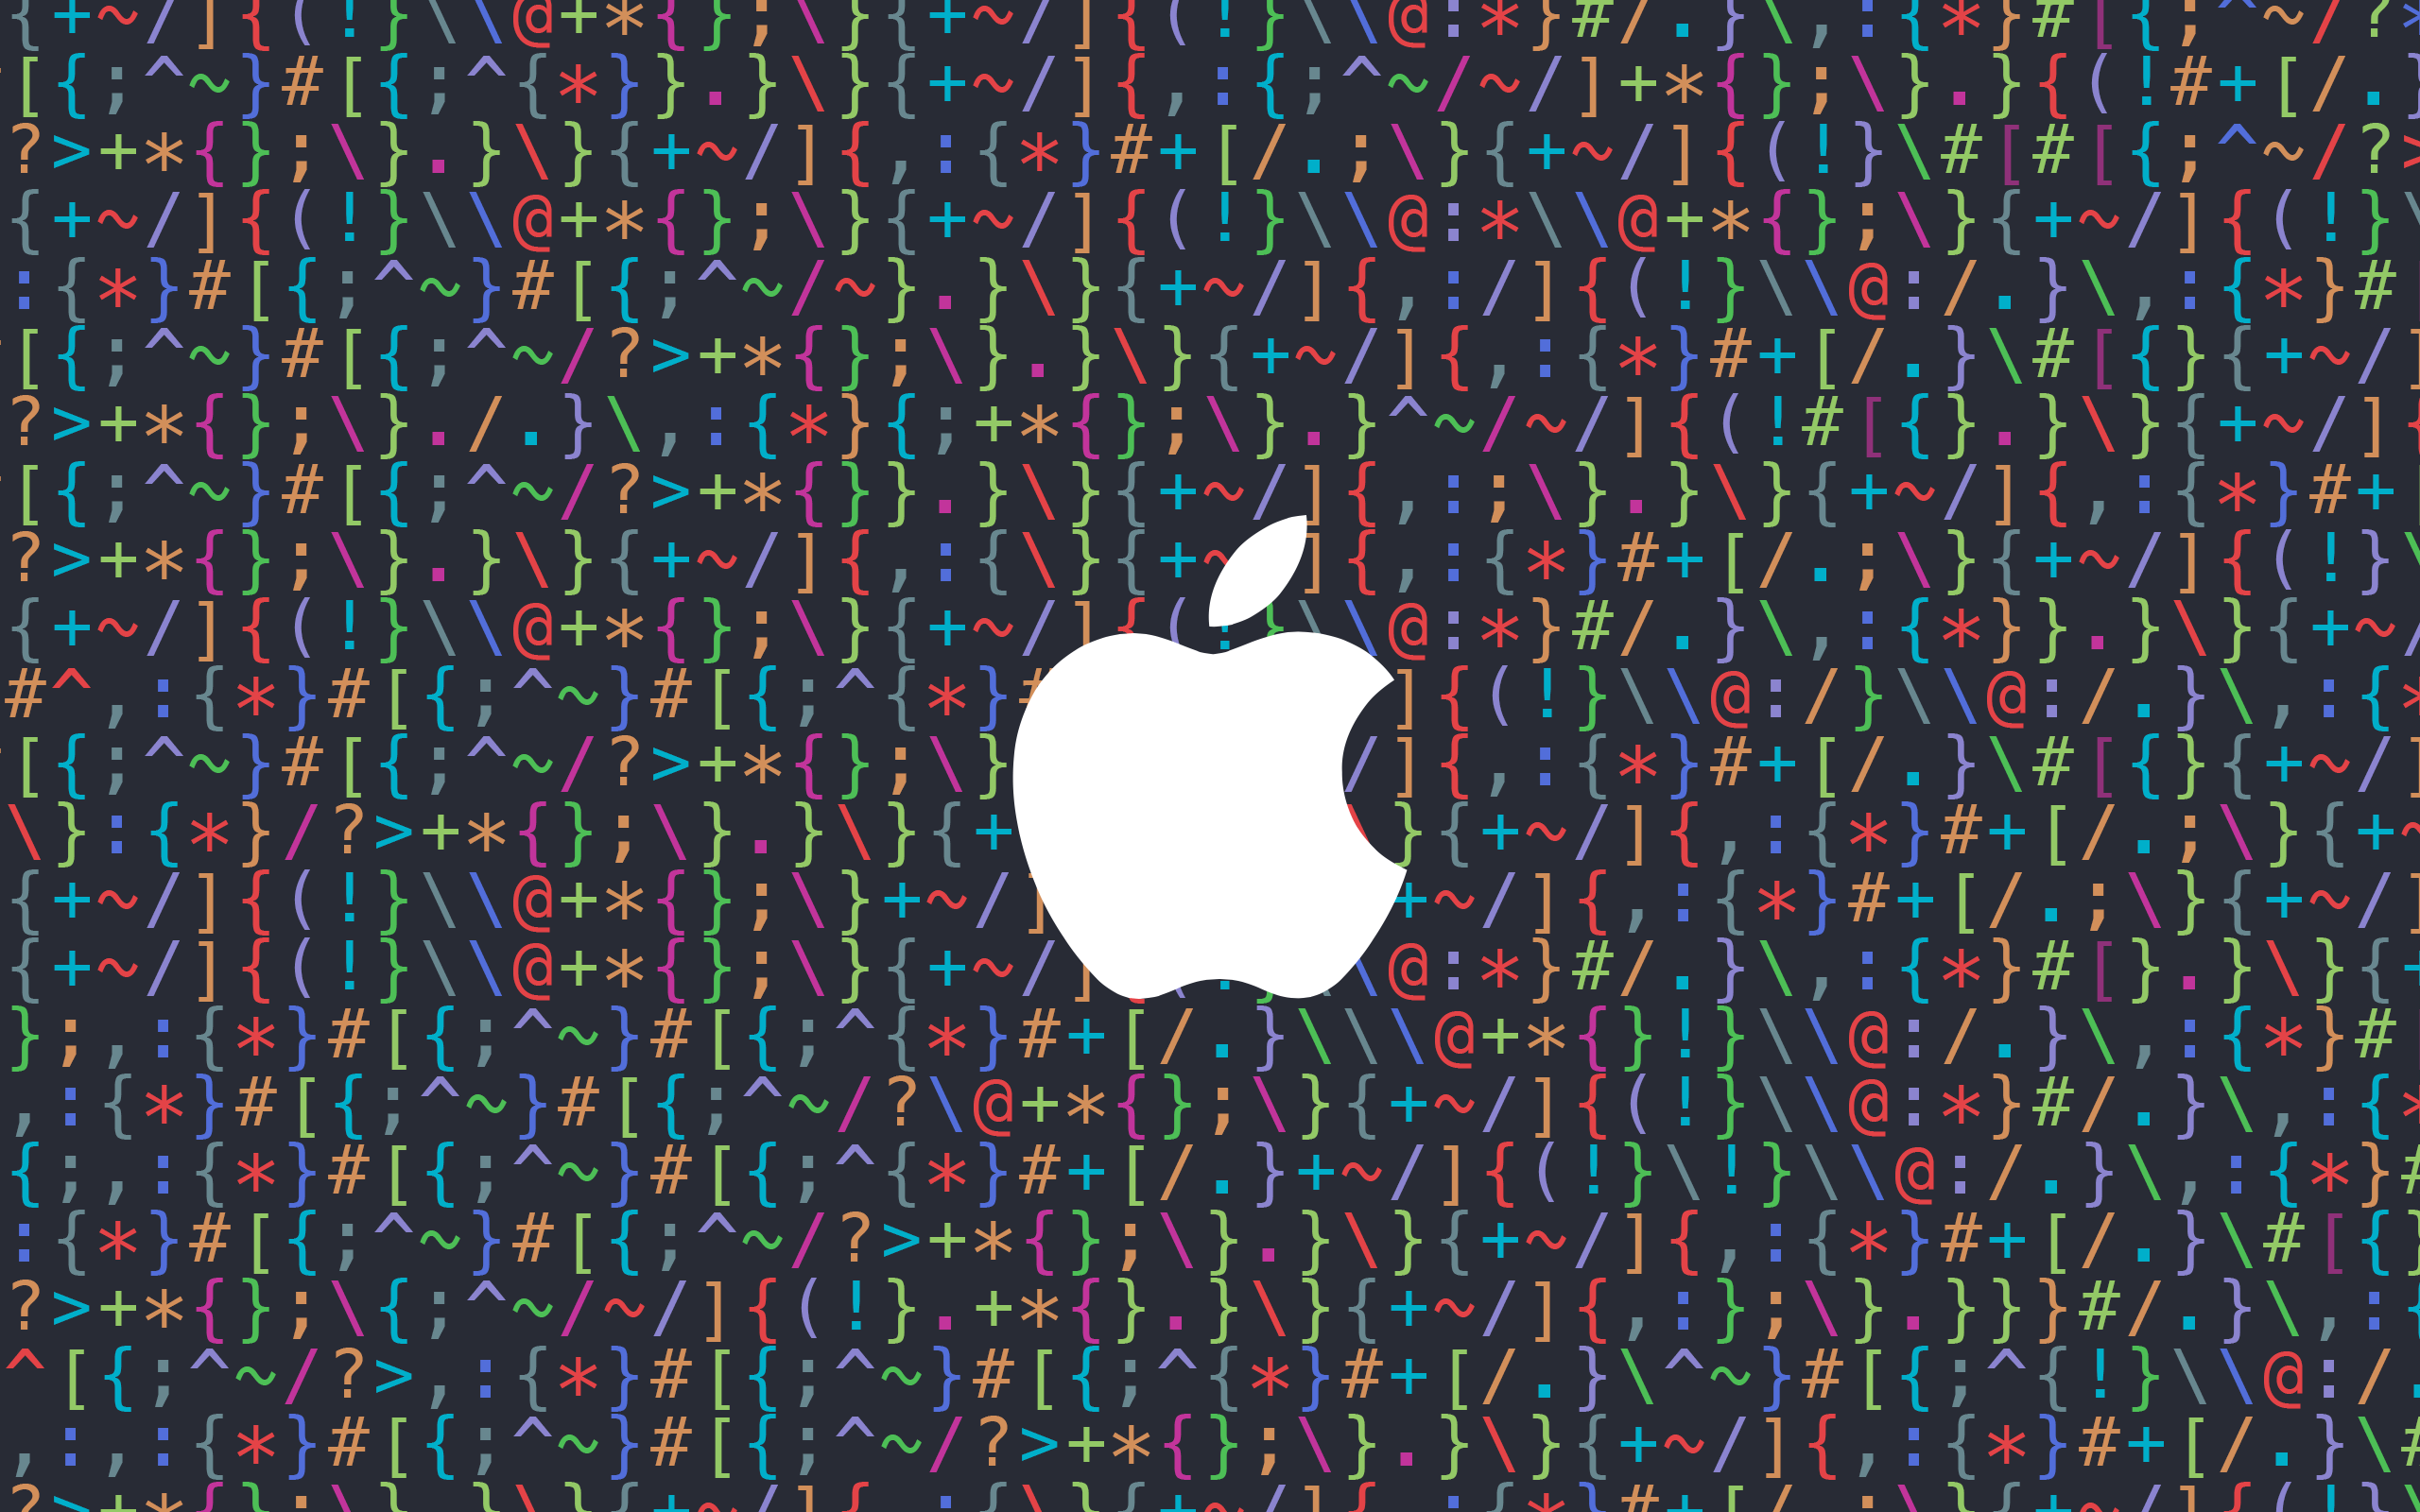 2560x1600 Even more great WWDC 2016 wallpapers